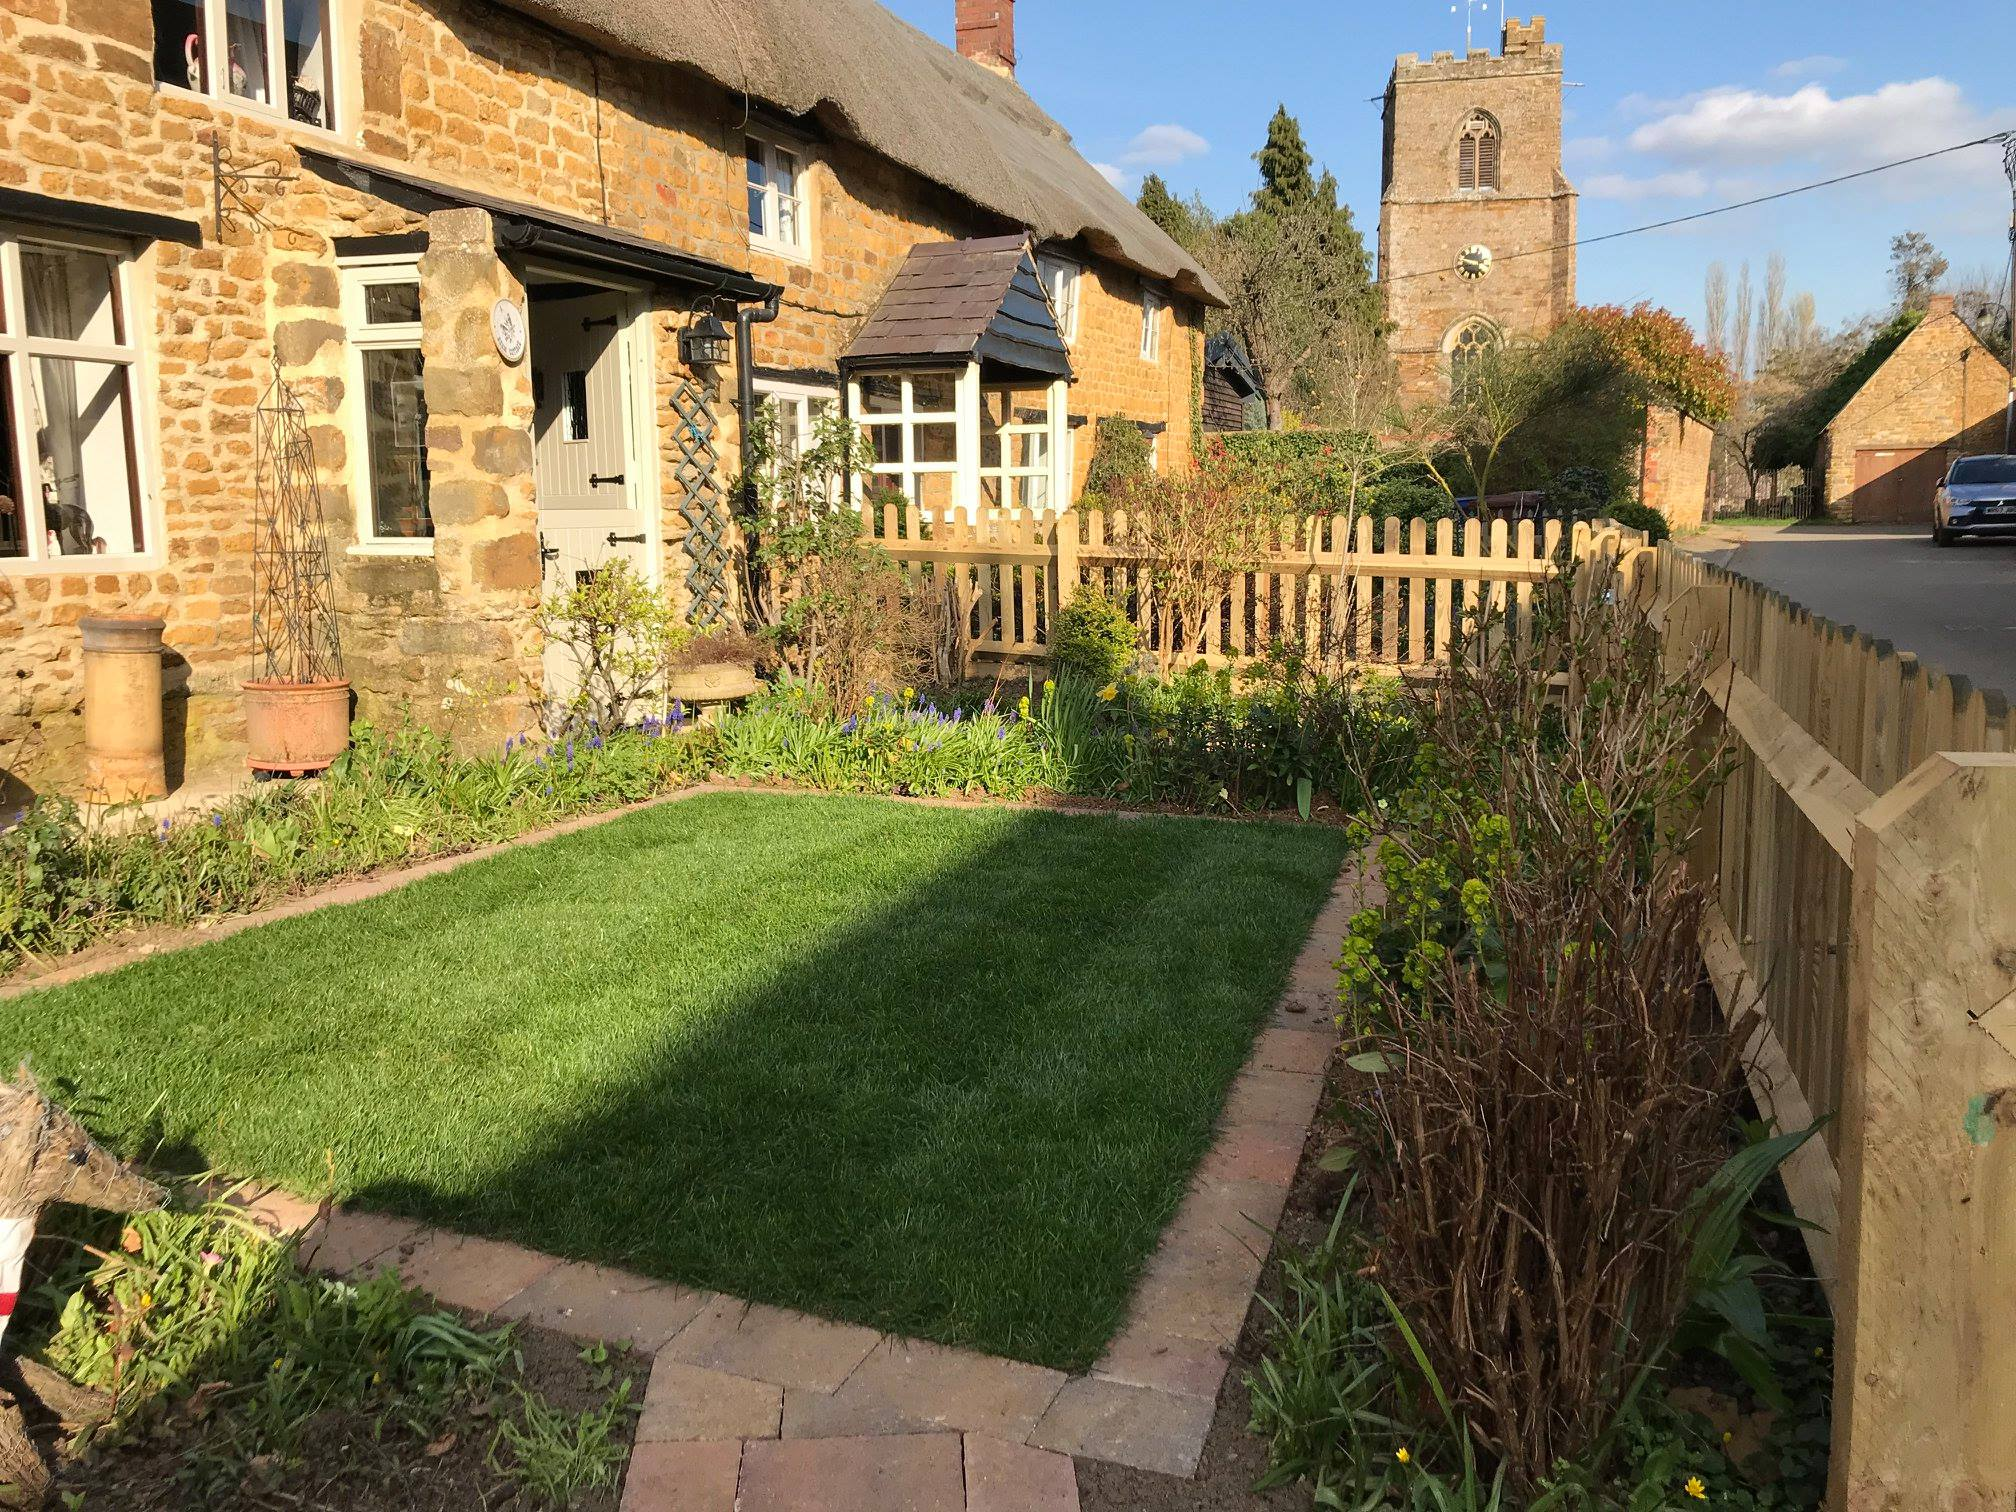 Cropredy Cottage Garden Renewal